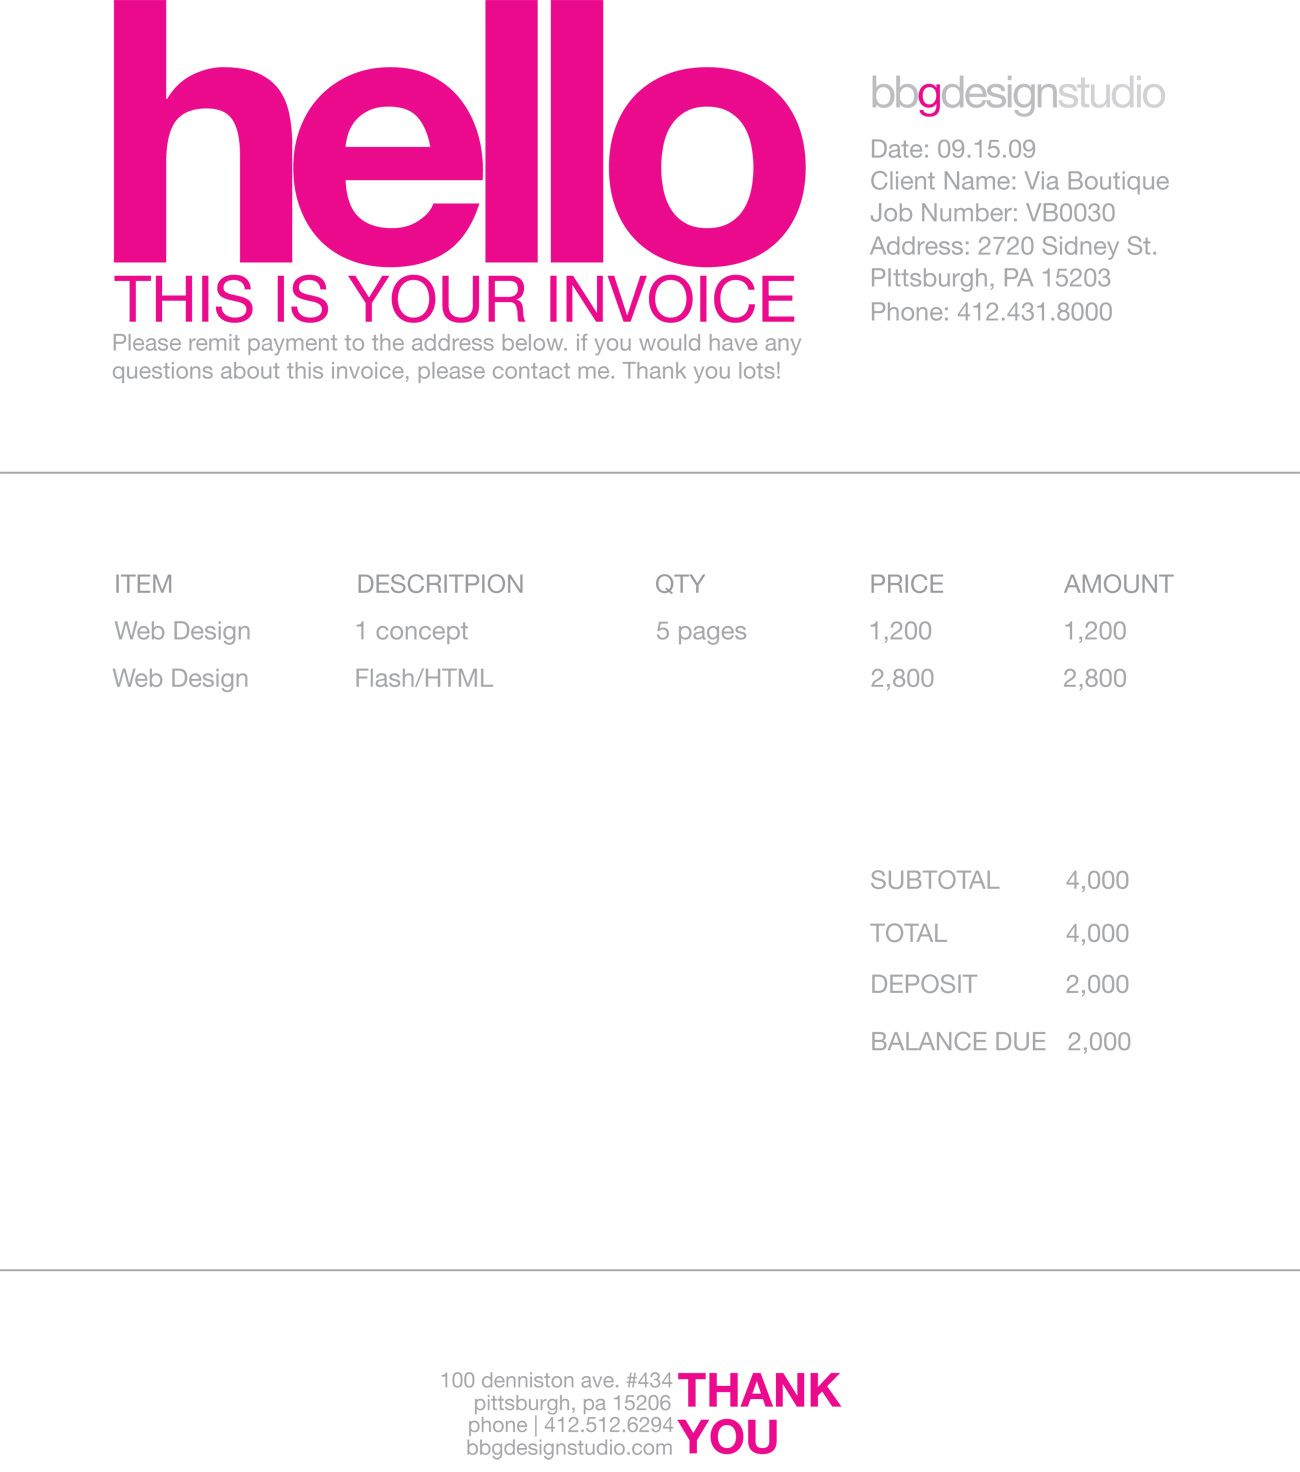 Reliefworkersus  Mesmerizing  Images About Invoice Design On Pinterest With Fascinating Credit Invoices Besides Invoice Discounting Rates Furthermore It Contractor Invoice Template With Charming Example Invoice Uk Also Gst Invoice Requirements In Addition Invoicing As A Sole Trader And How To Make Invoices On Excel As Well As Ms Word Template Invoice Additionally Perfoma Invoice From Pinterestcom With Reliefworkersus  Fascinating  Images About Invoice Design On Pinterest With Charming Credit Invoices Besides Invoice Discounting Rates Furthermore It Contractor Invoice Template And Mesmerizing Example Invoice Uk Also Gst Invoice Requirements In Addition Invoicing As A Sole Trader From Pinterestcom